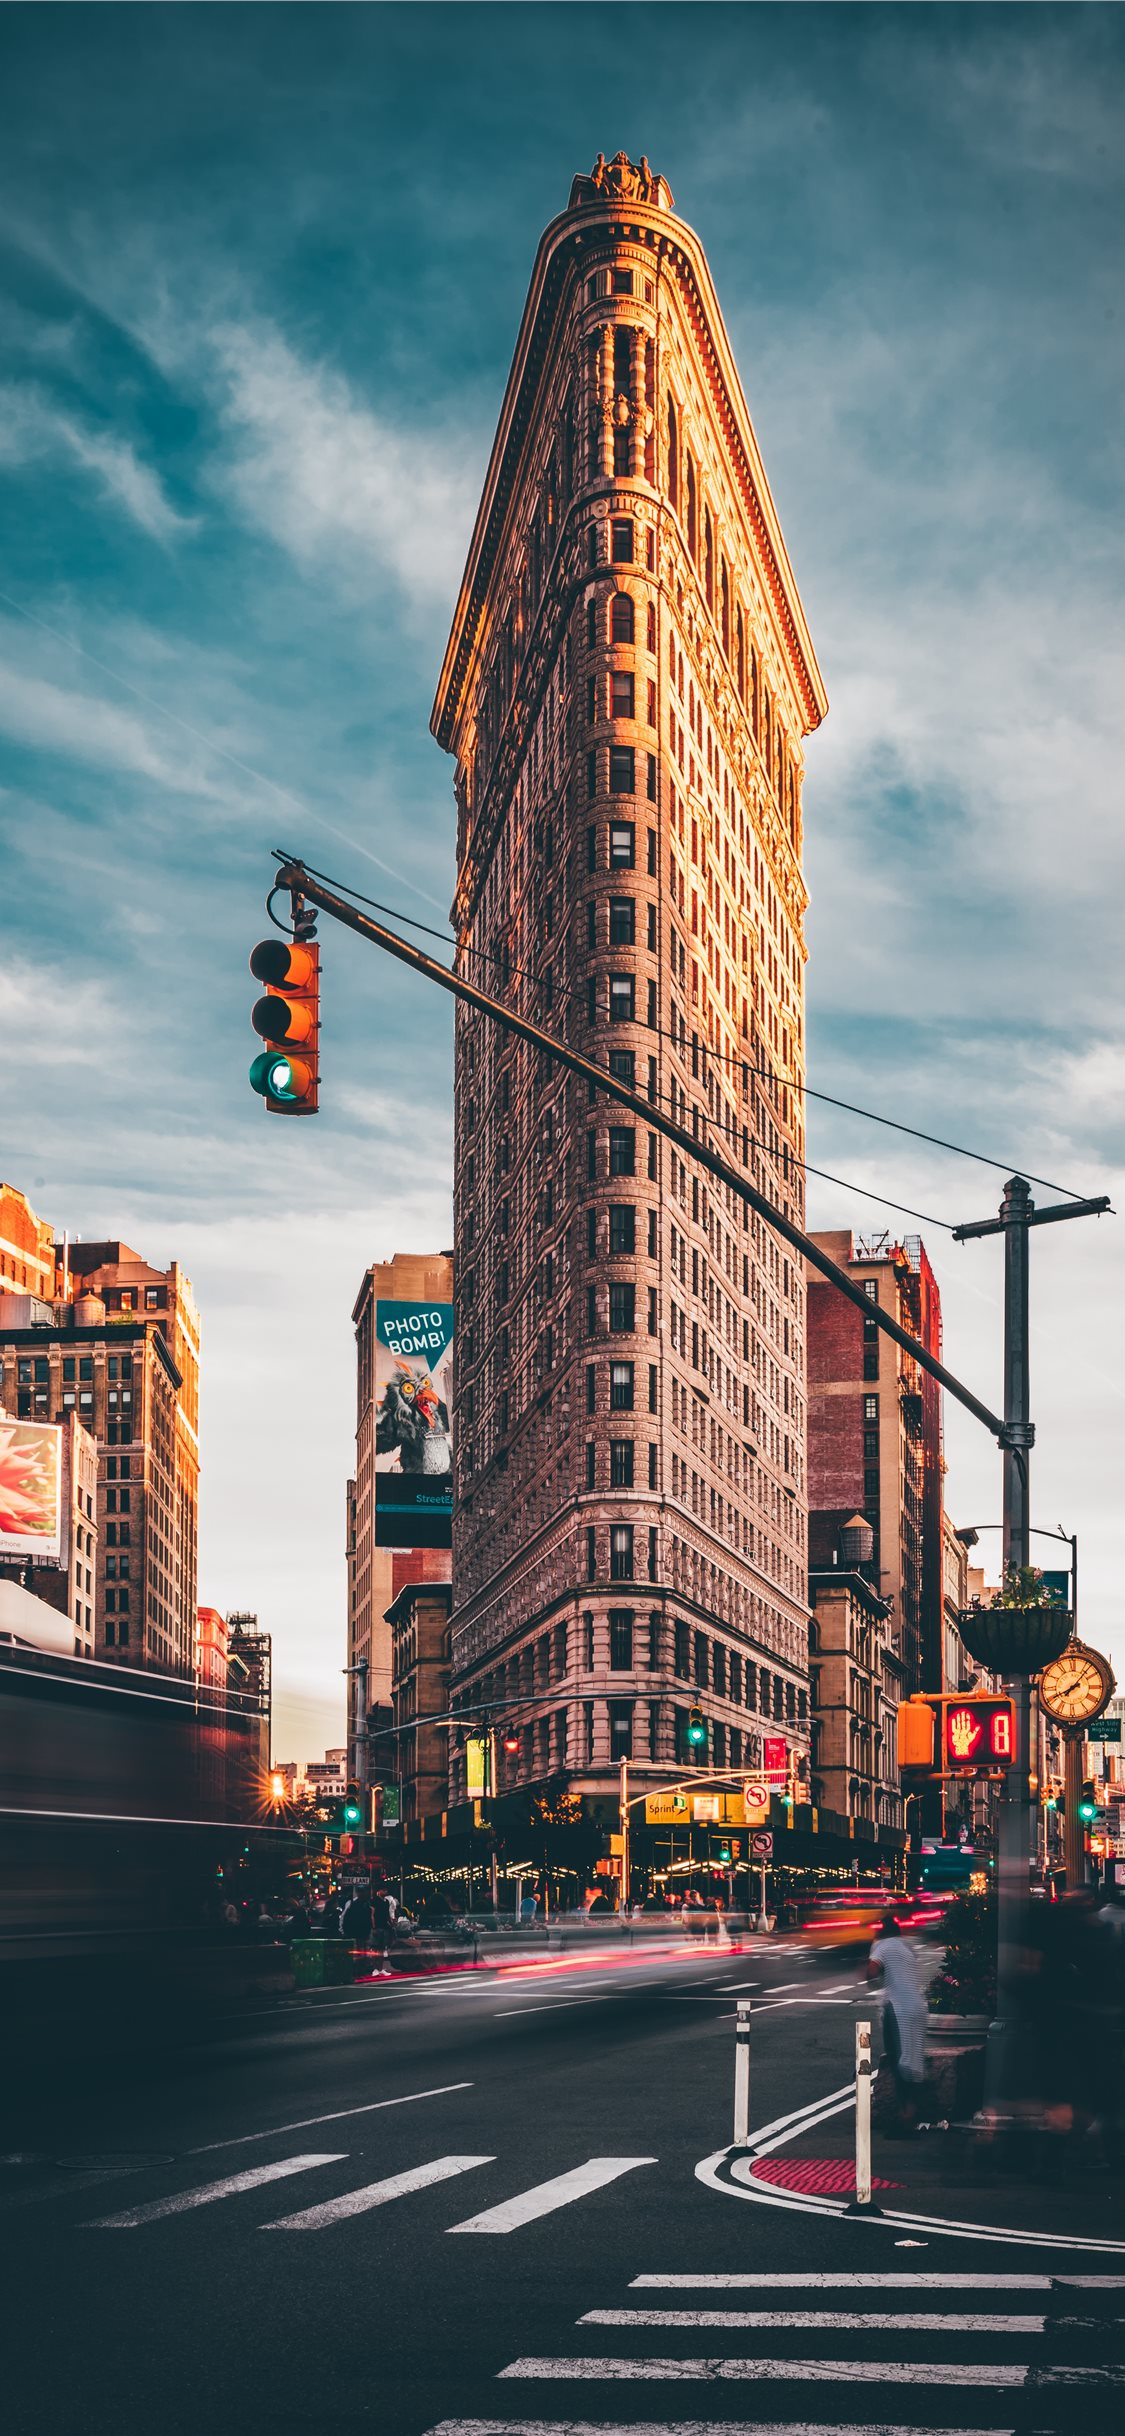 Flatiron Building New York United States Iphone X Wallpapers